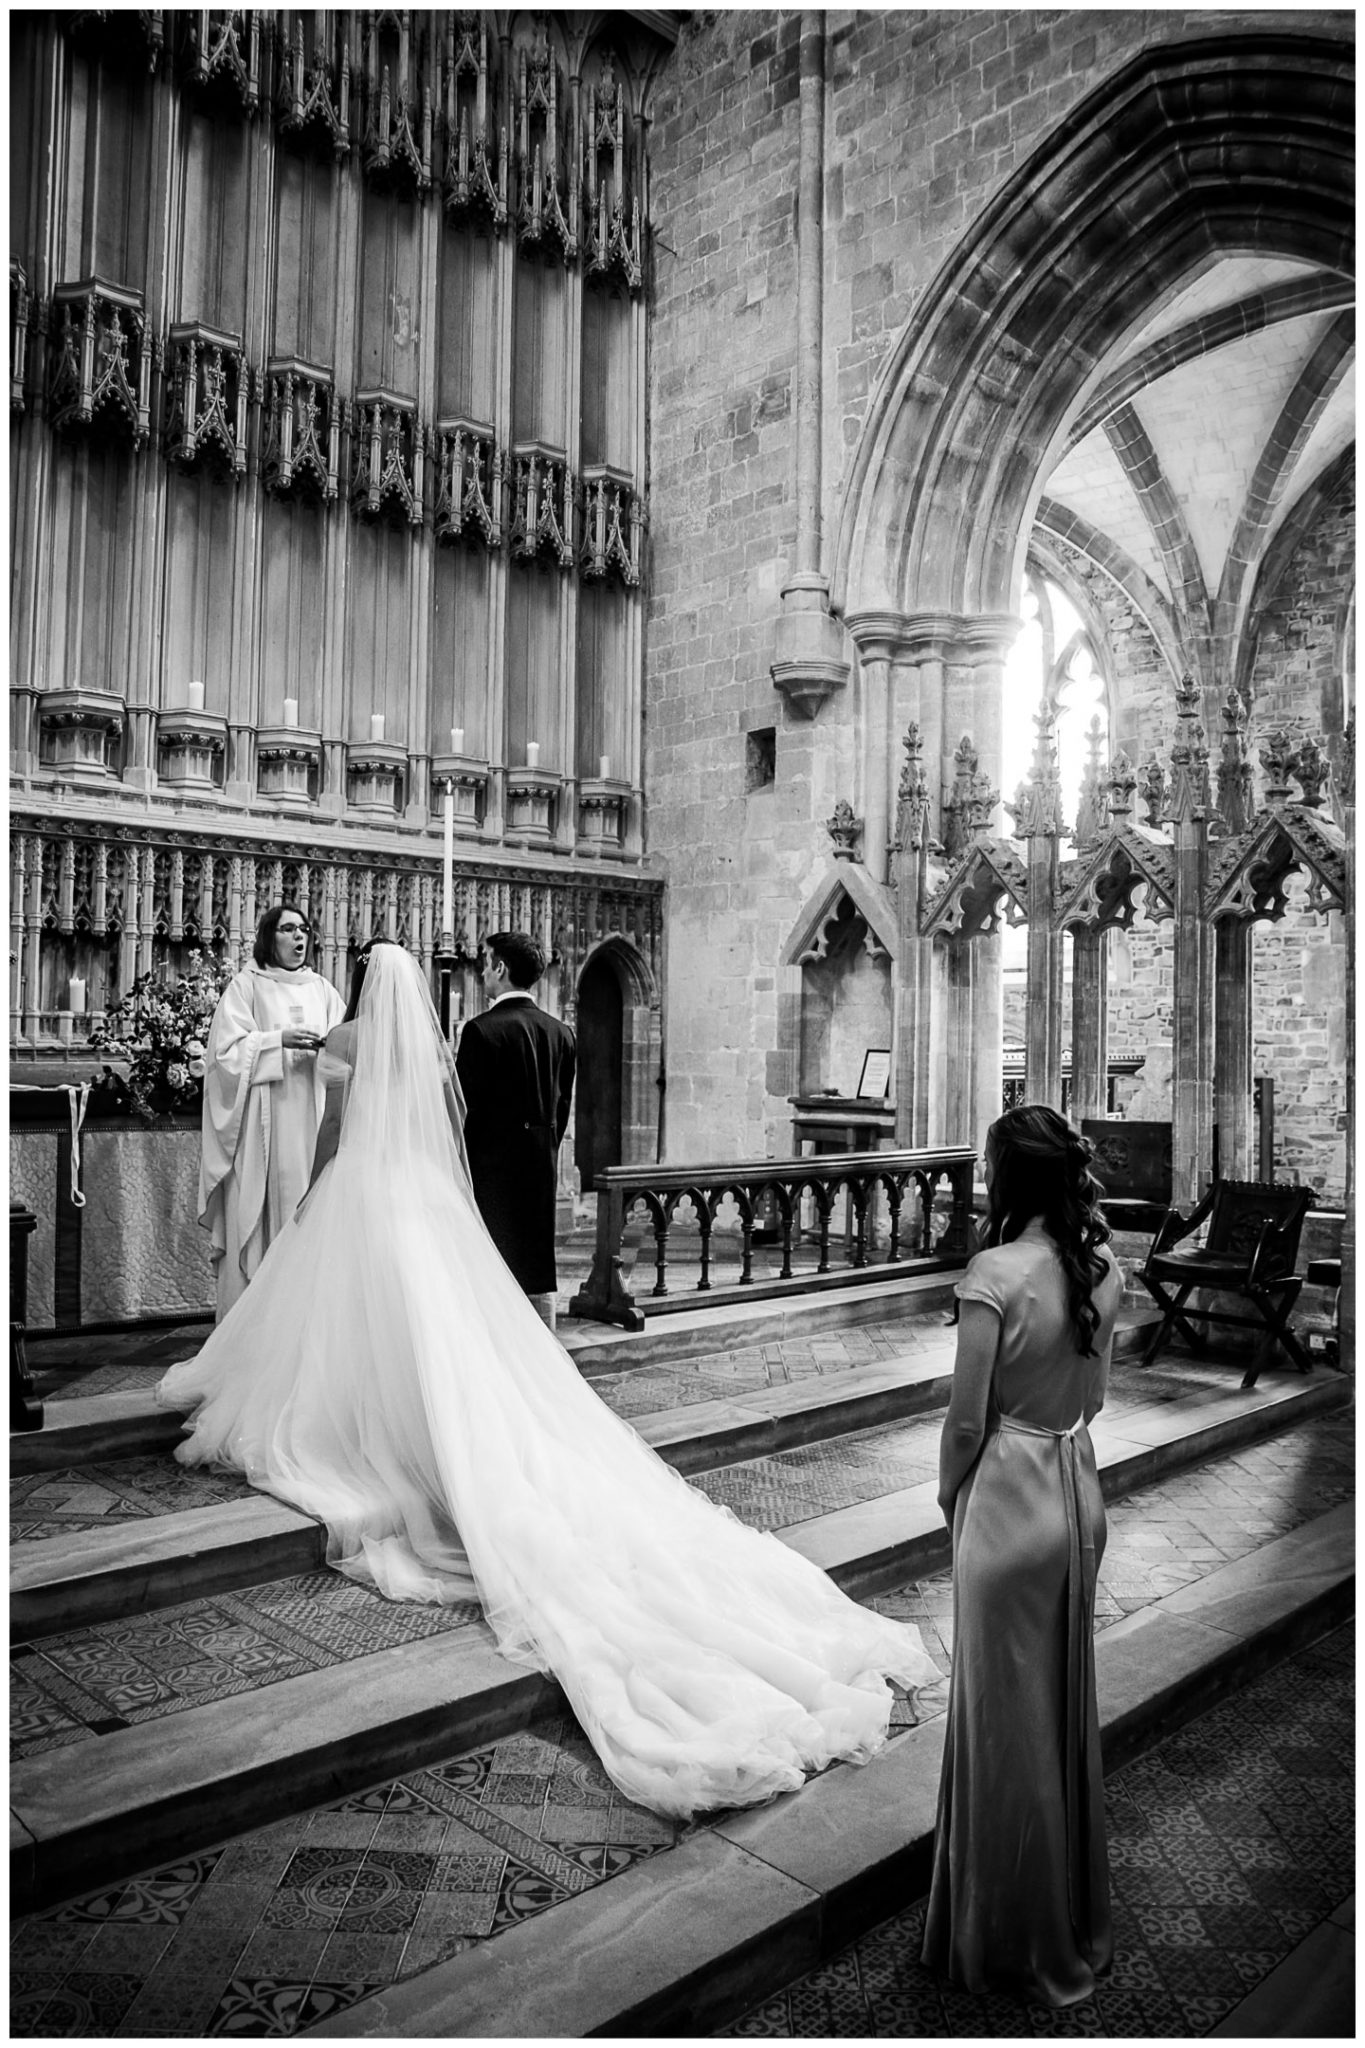 Bride and groom approach the altar for their blessing